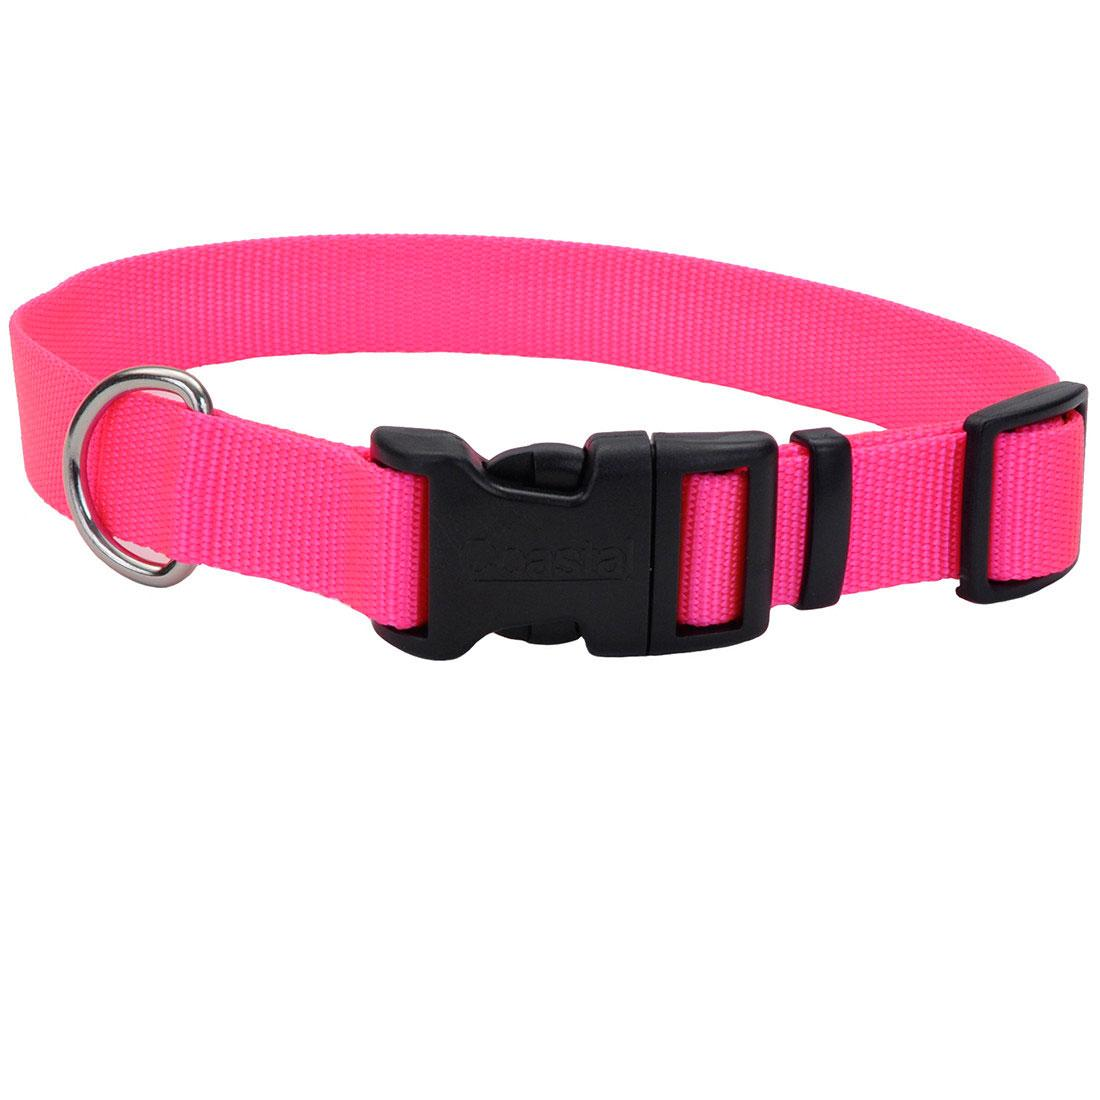 Coastal Adjustable Collar with Plastic Buckle for Dogs, Neon Pink, 1-in x 14-20-in